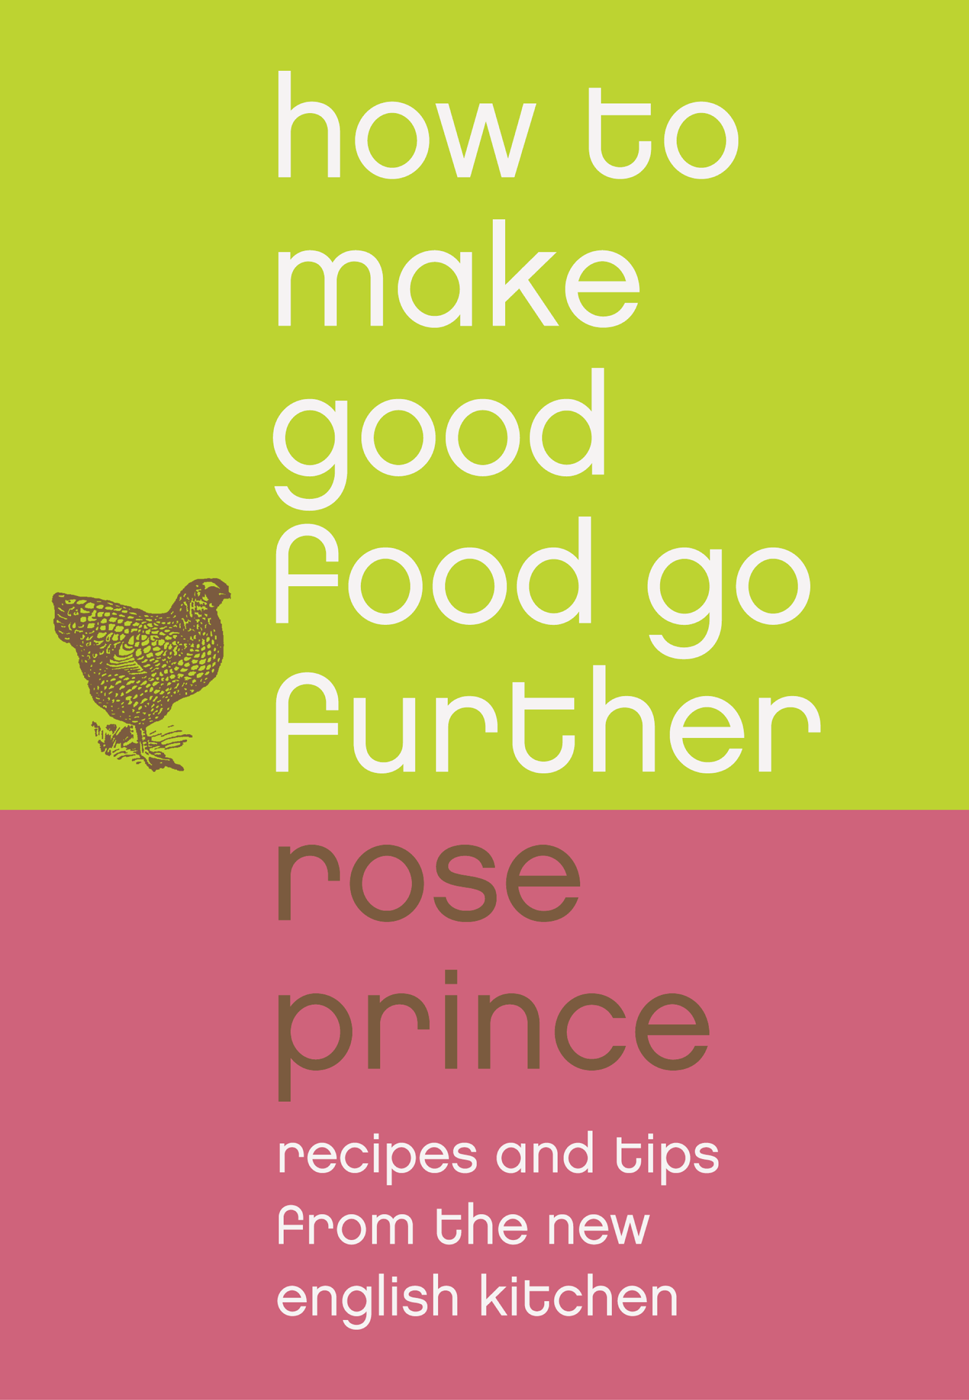 Rose Prince - How To Make Good Food Go Further: Recipes and Tips from The New English Kitchen